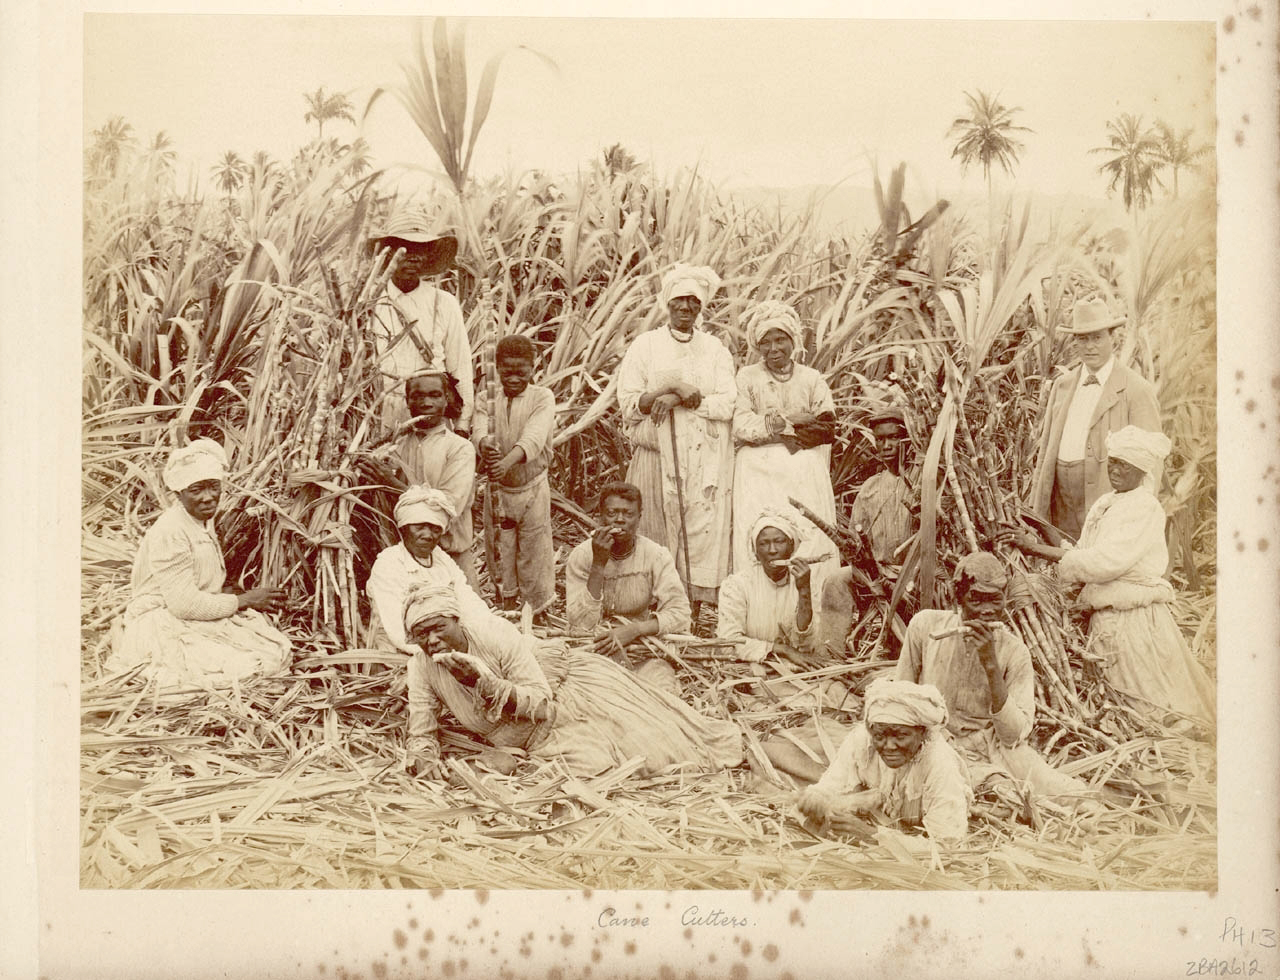 problems facing sugar planters british colony jamaica duri The problems-----the islands of the british west indies saw foreign competition from the slave grown sugar of louisiana and cuba however, by the 1860's, due to a loan from the british government, trinidad, antigua, barbados, british guiana and st kitts all survived the equalization crisis.